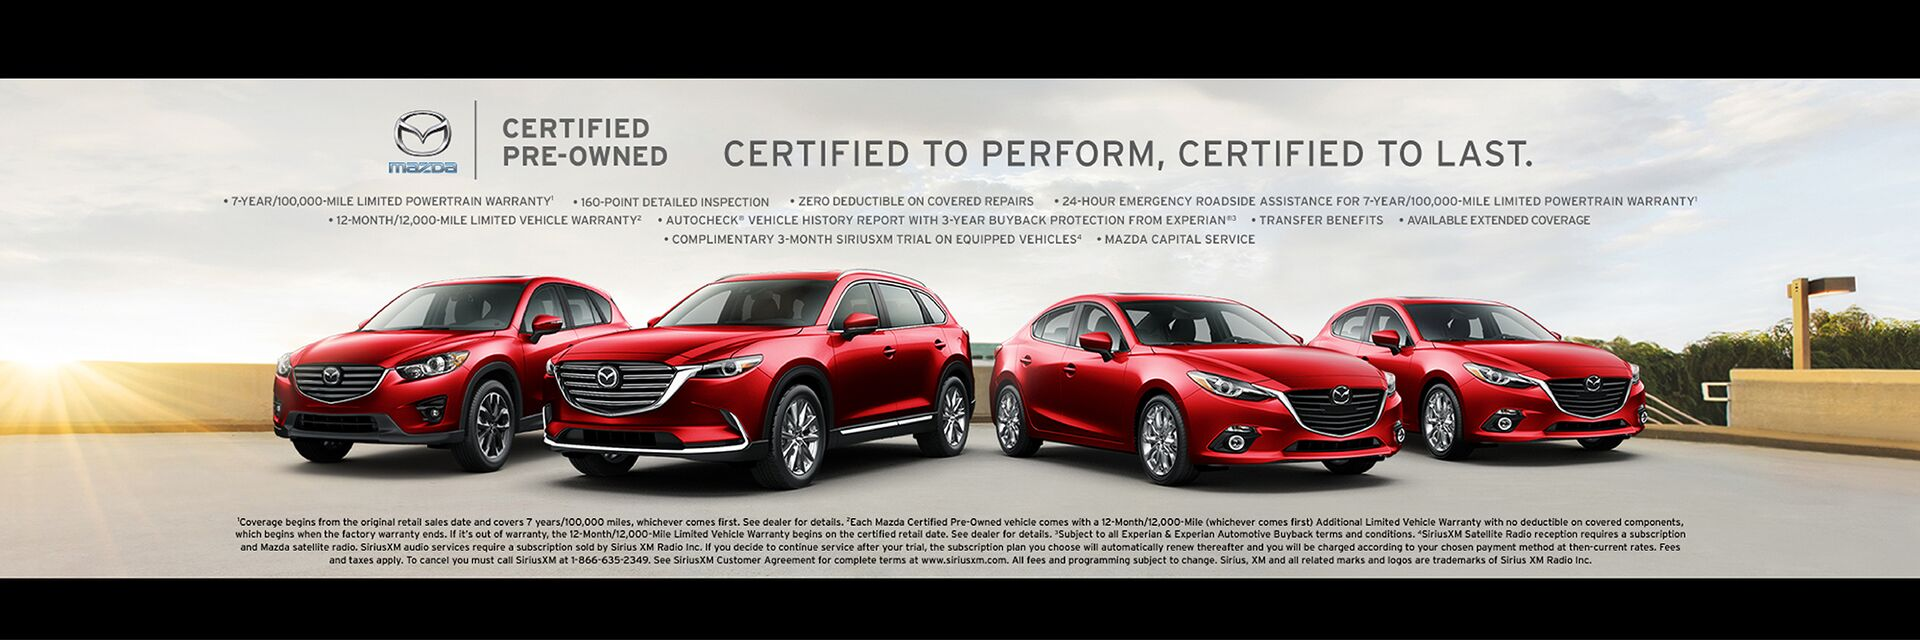 Capistrano Maza Certified Pre Owned Vehicles